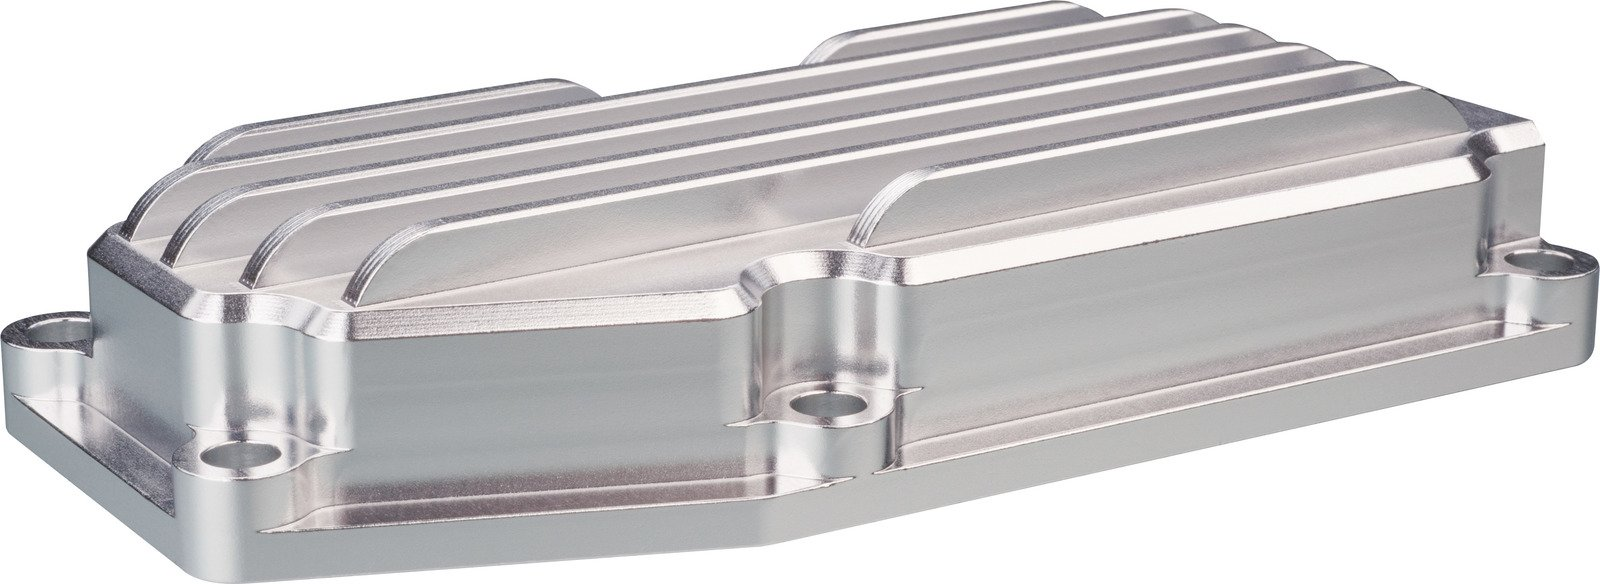 Oil Sump Cover Finned For Improved Heat Dissipation 583-13417-01-00   50262